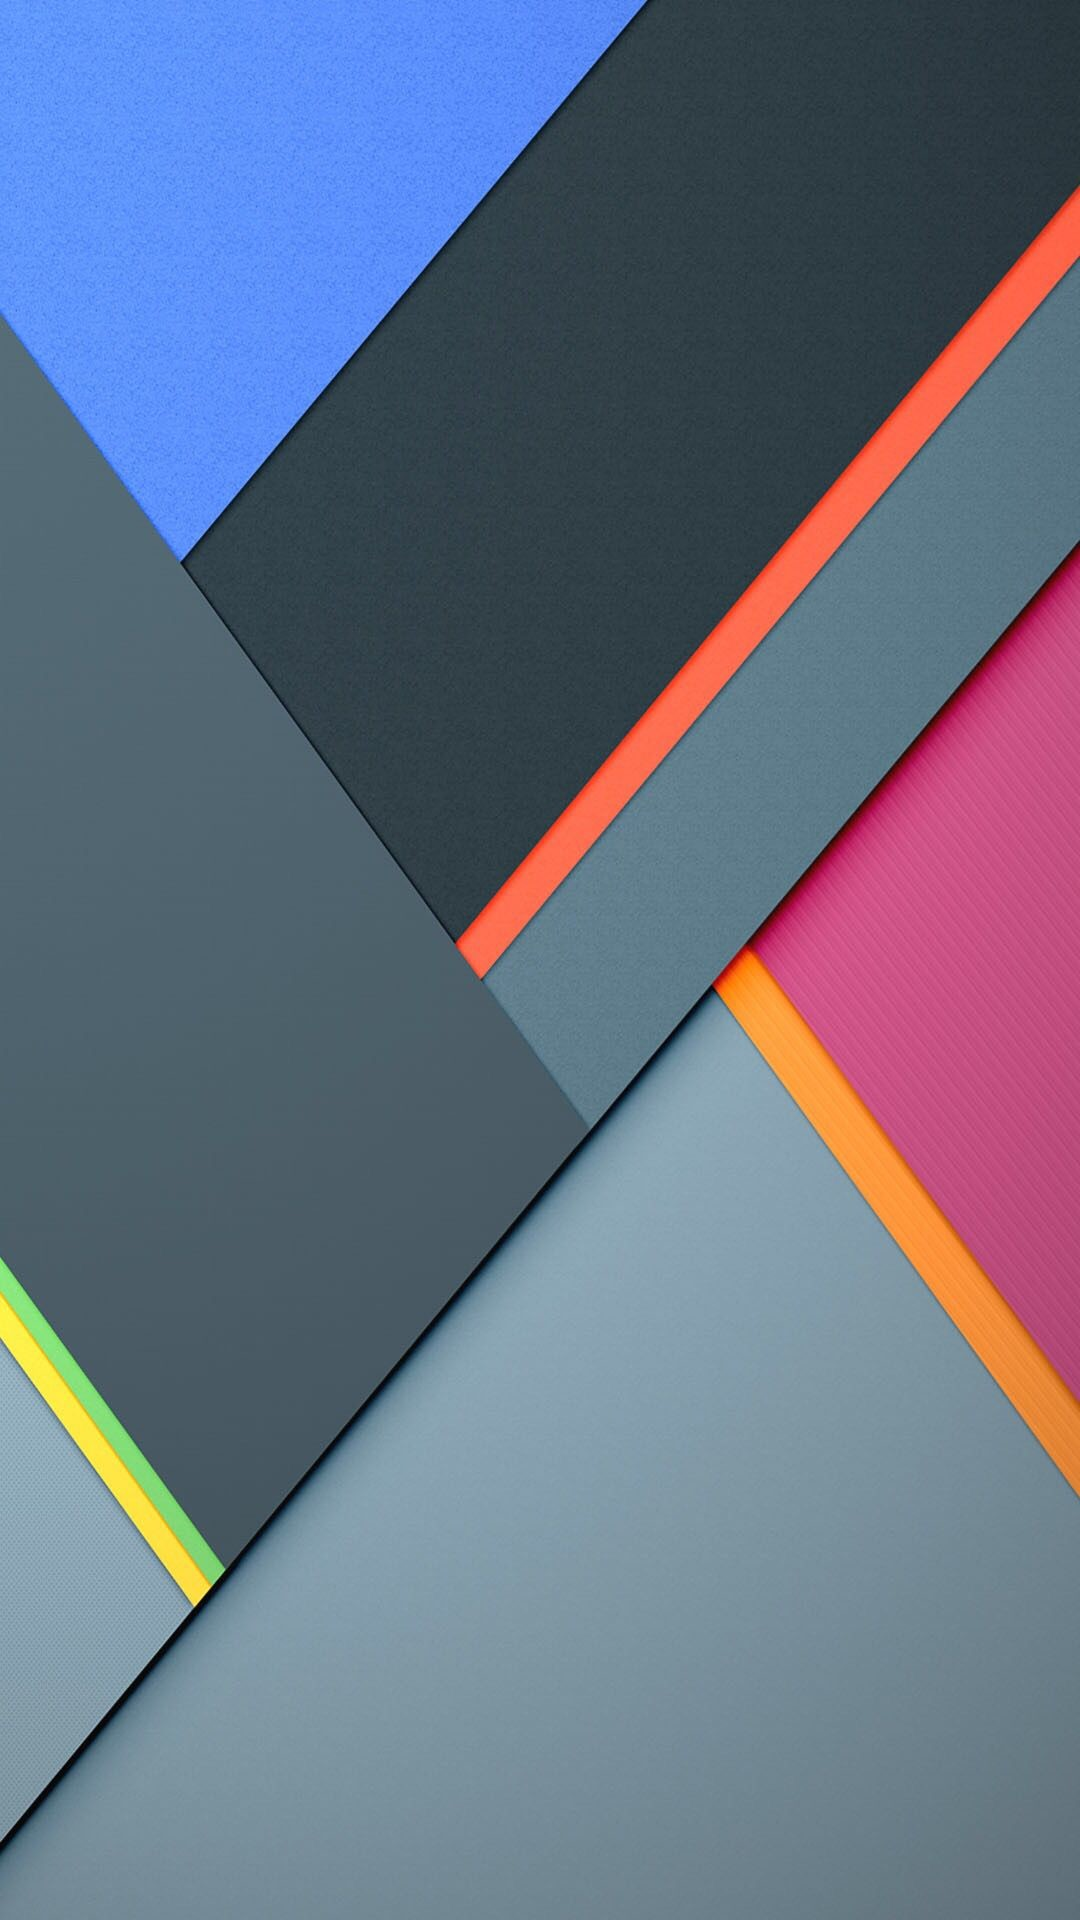 Res: 1080x1920, Colorful Abstract Geometric Wallpaper